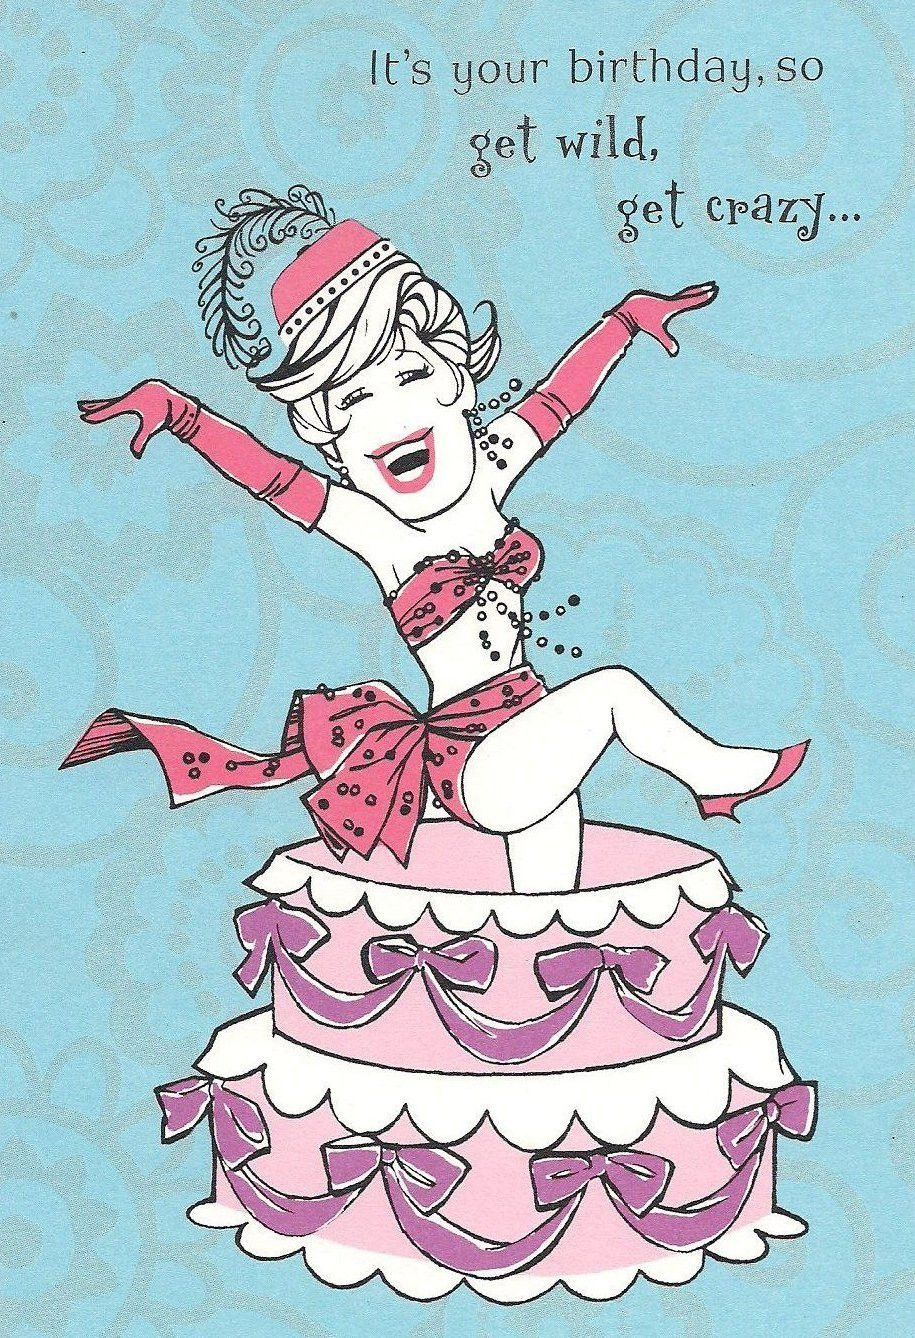 Sexy Lady Show Girl Pops Out of Cake Birthday Greeting Card – Happy Birthday Card Hallmark